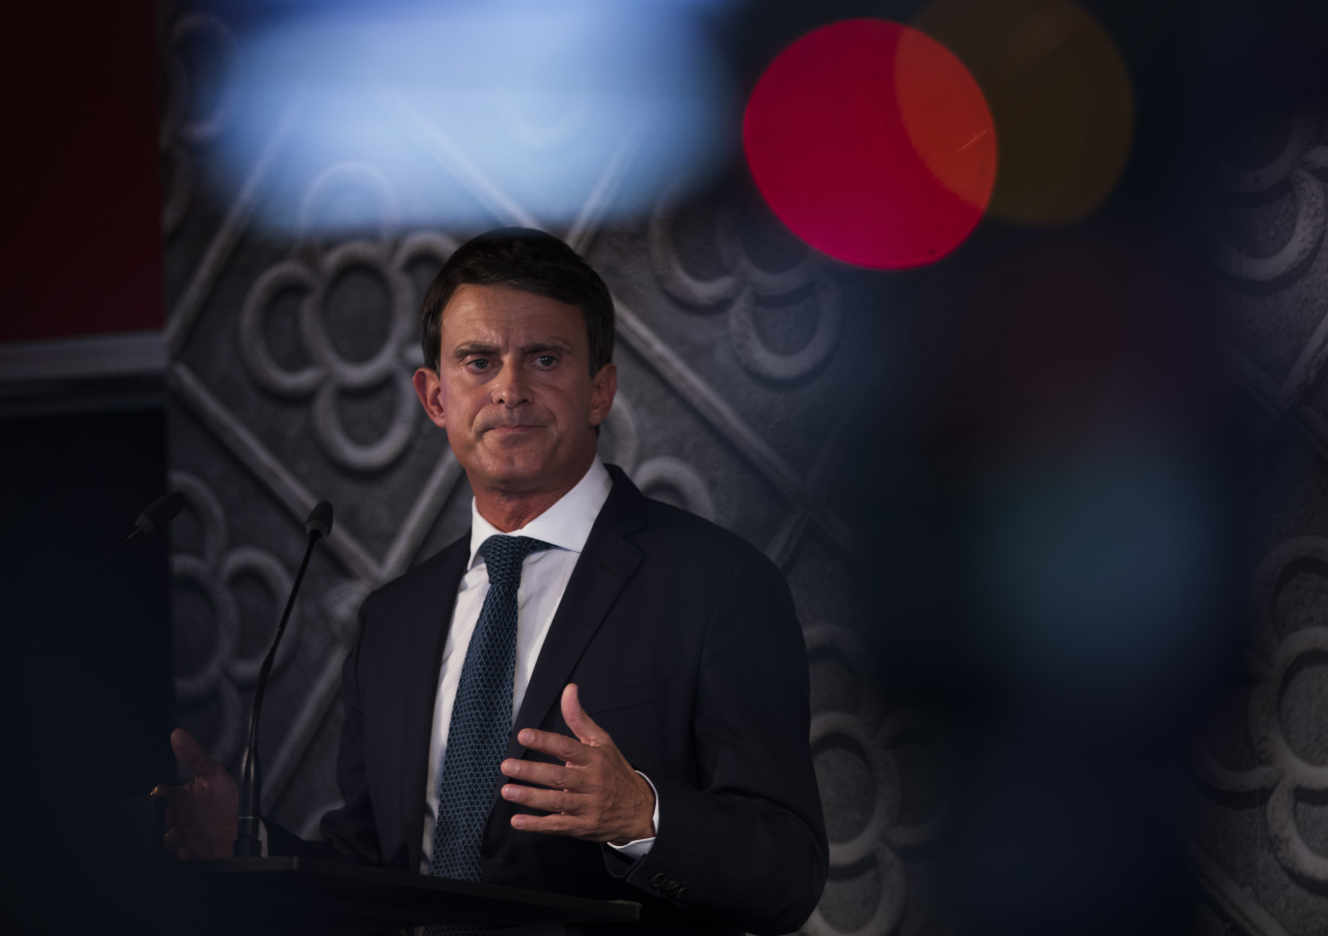 France's former prime minister Manuel Valls speaks during a presentation ceremony in Barcelona, Spain to announce his candidacy for mayor of Barcelona on Tuesday, Sept. 25, 2018. (AP Photo/Emilio Morenatti)